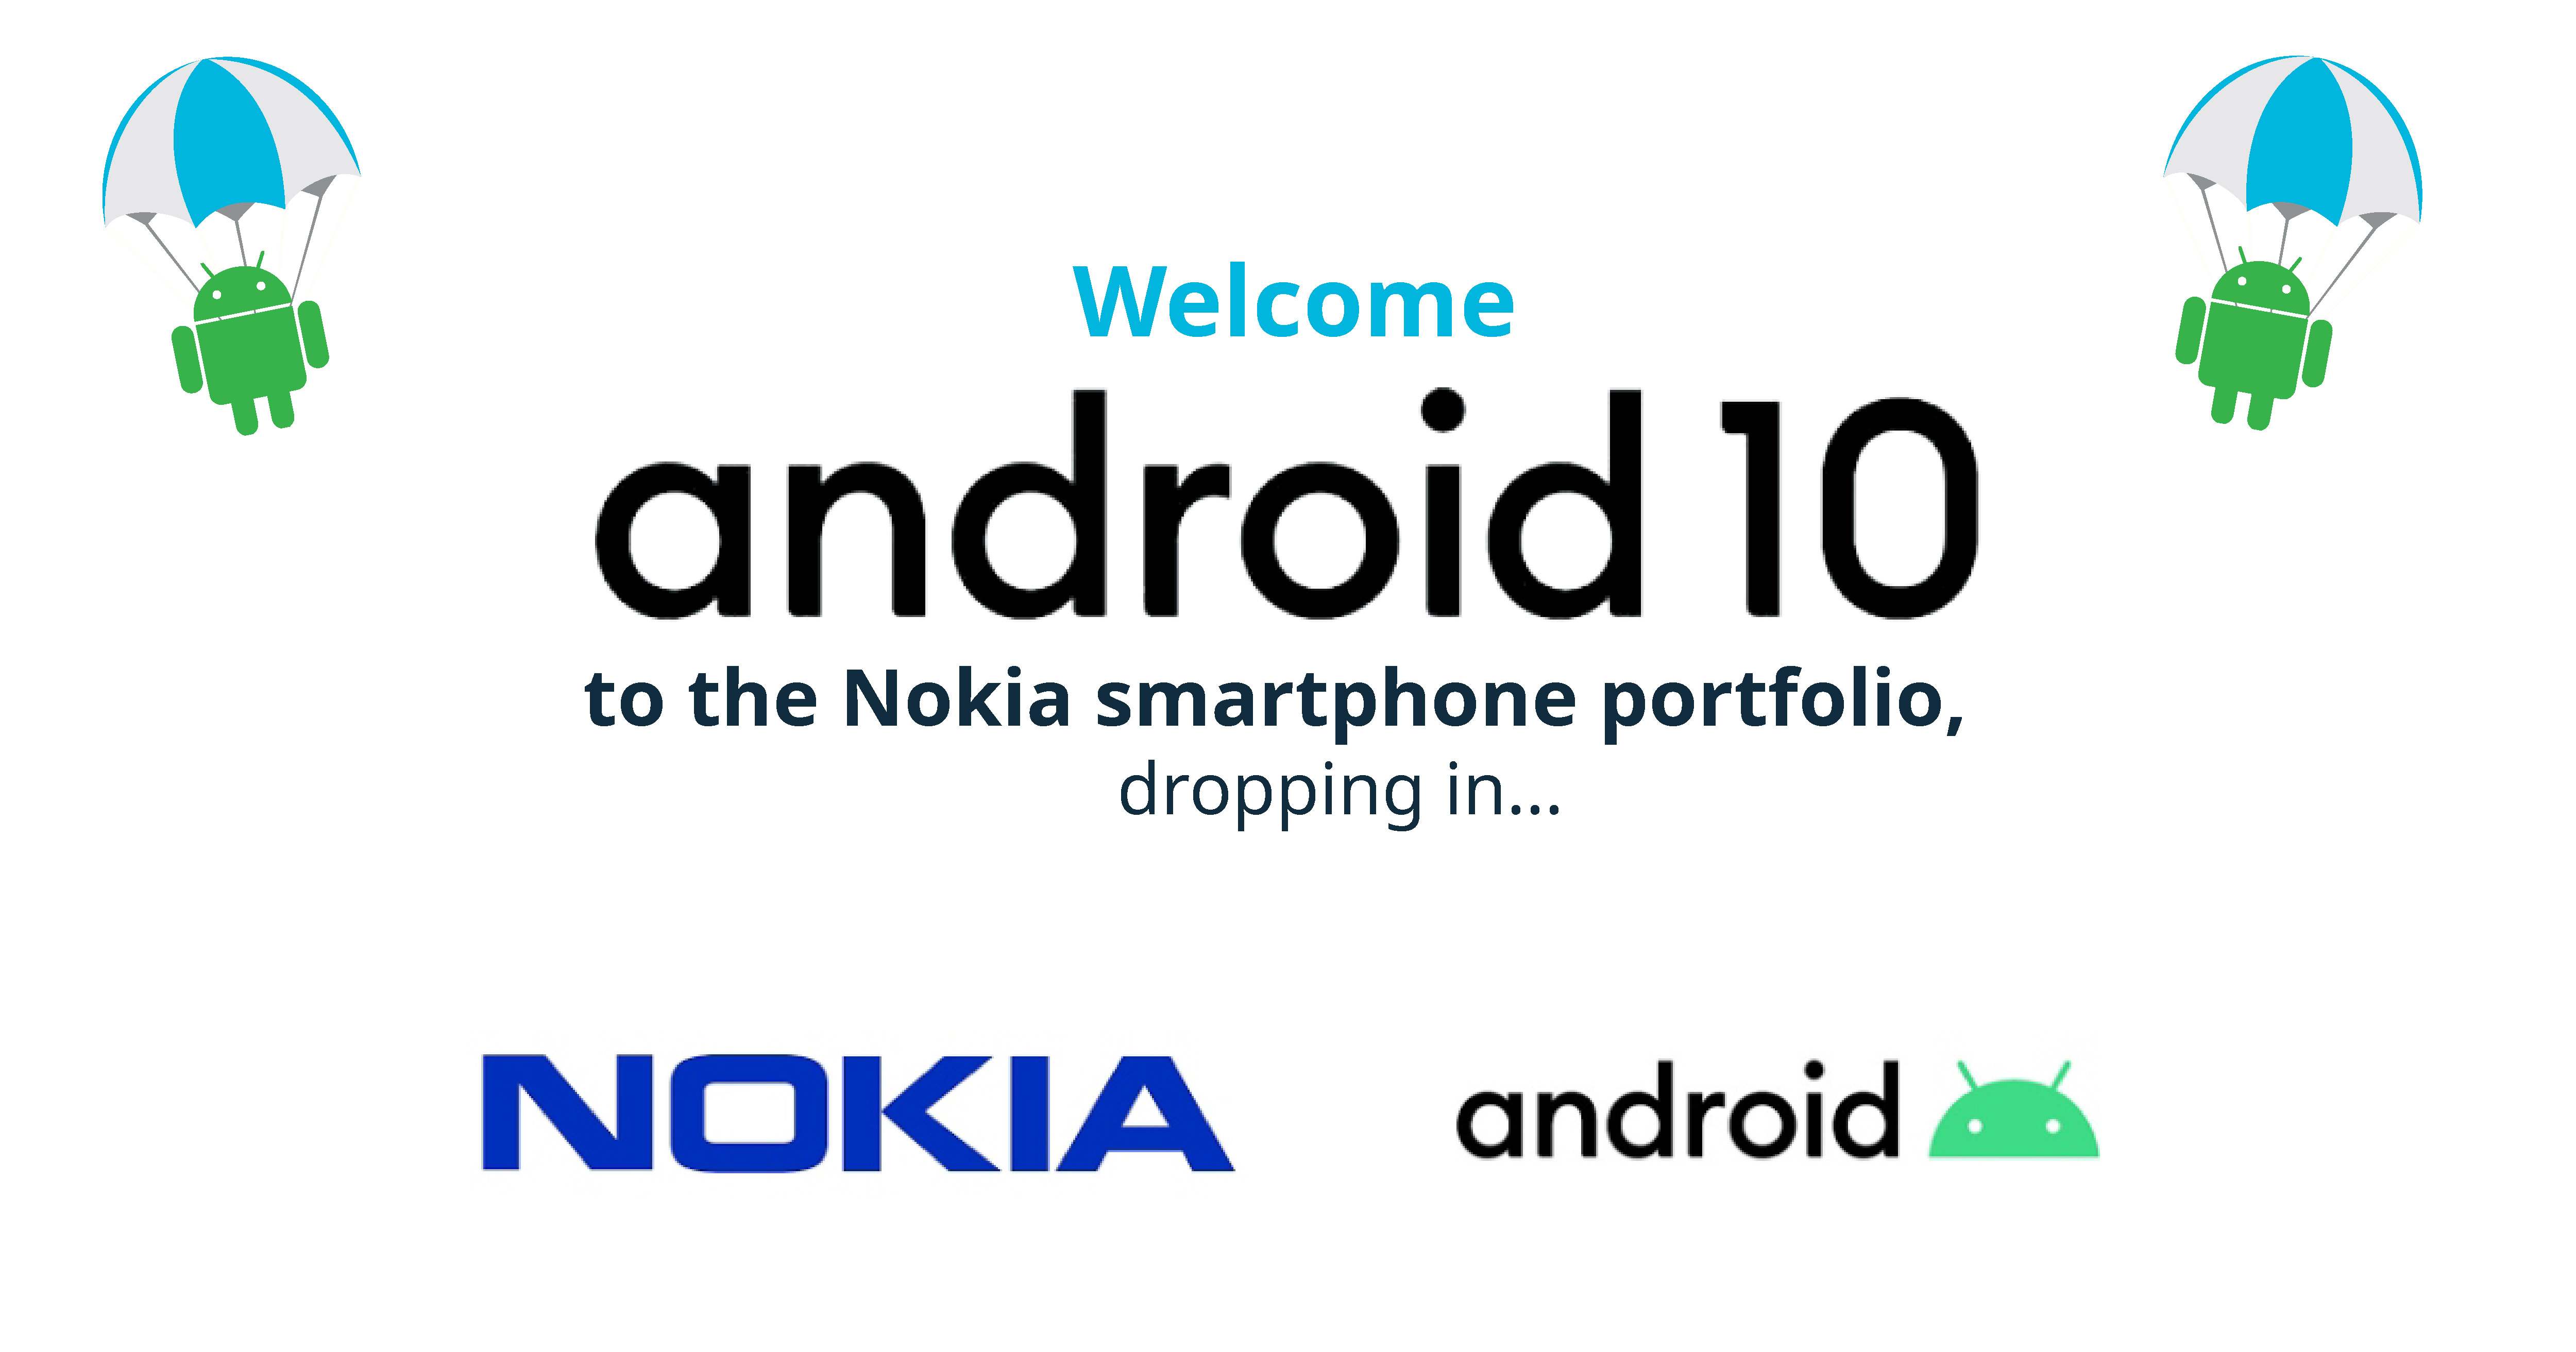 Welcome android 10 to Nokia cover-01